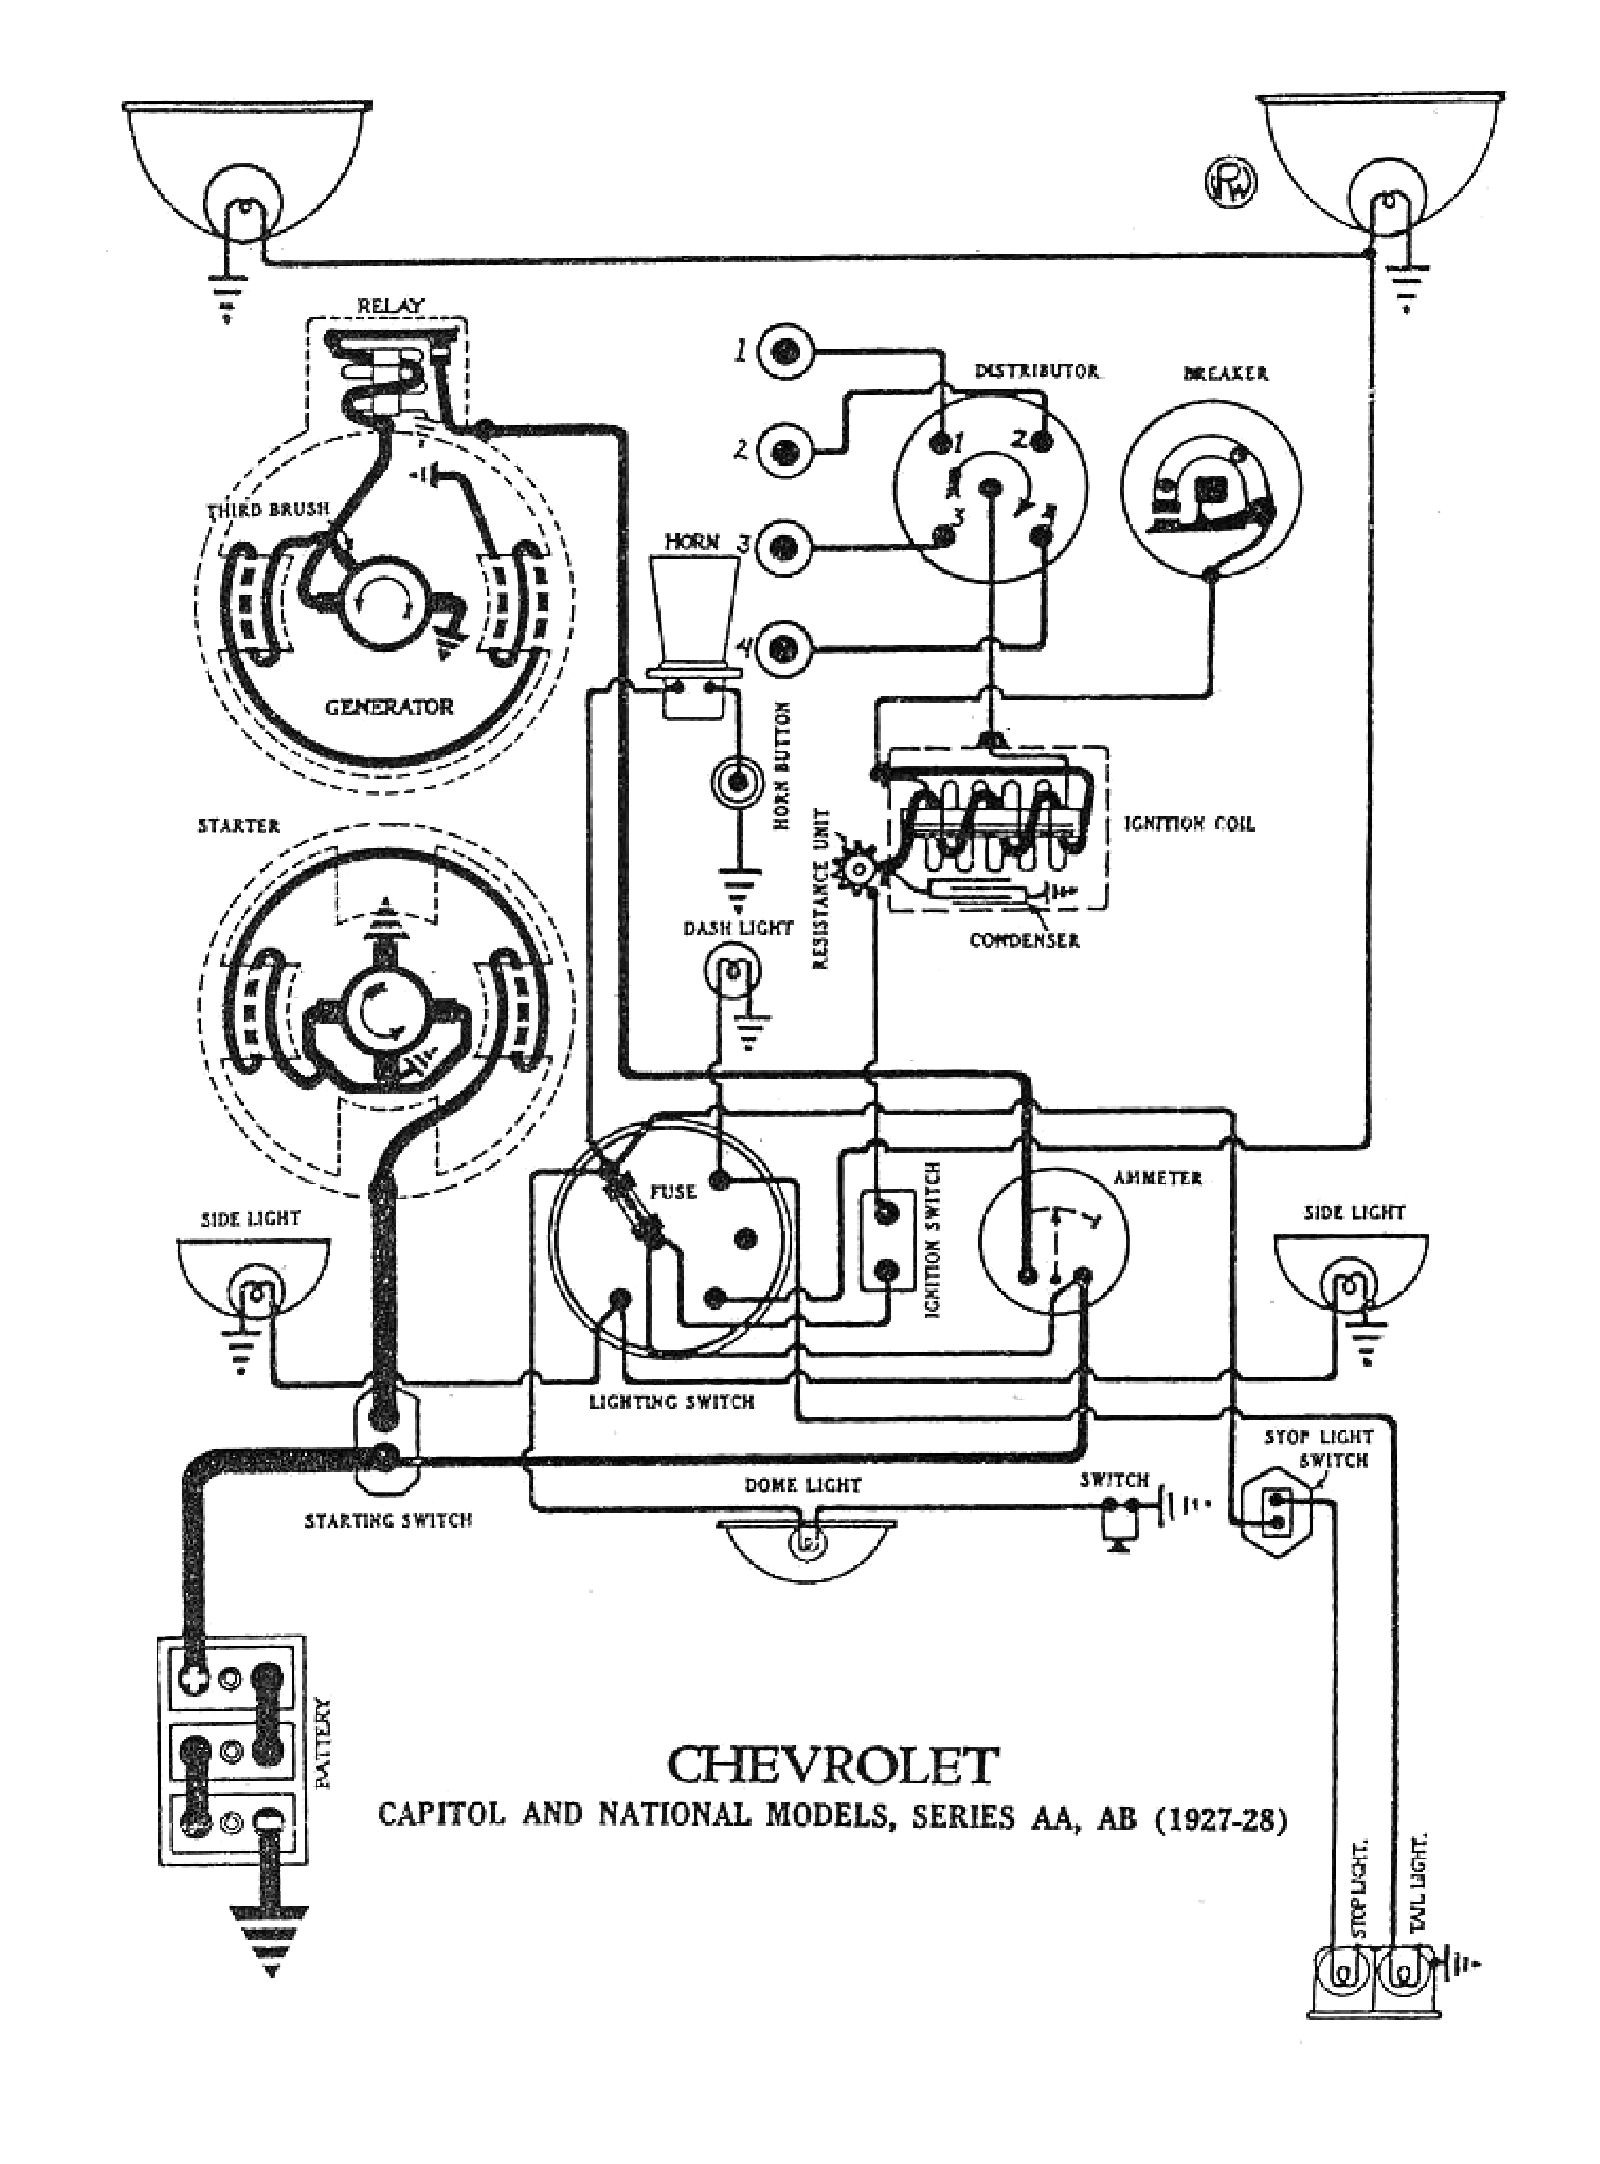 57 Chevy Engine Wiring Diagram - WIRE Center •